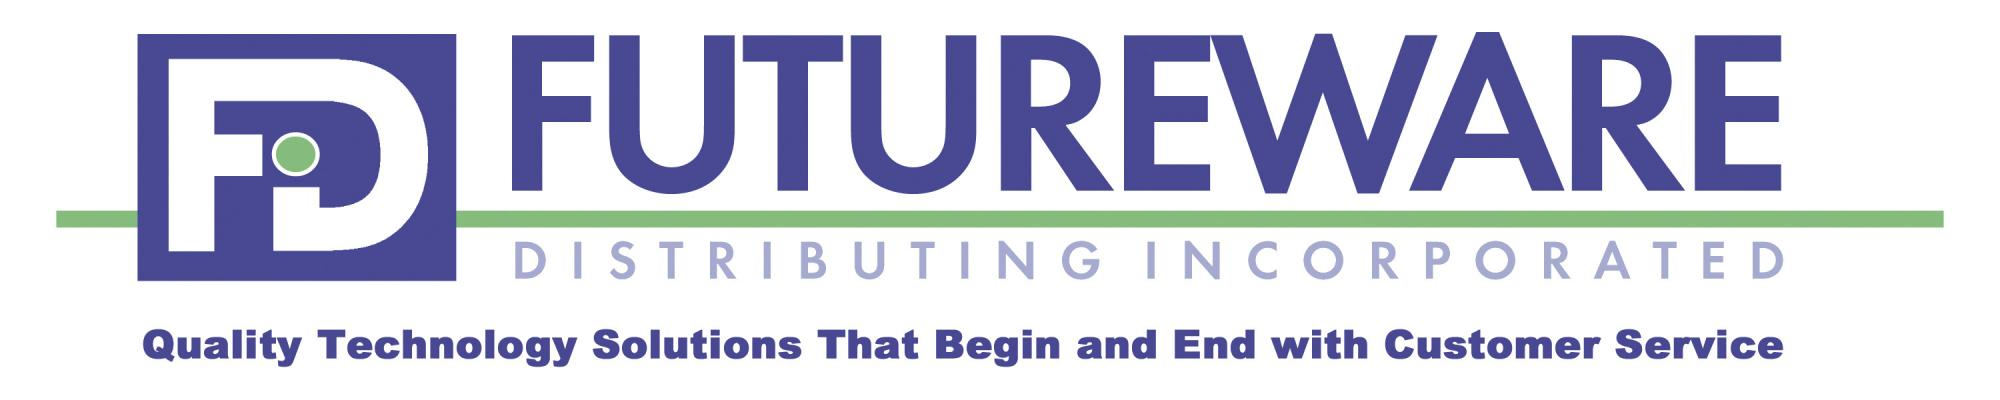 Futureware Distributing